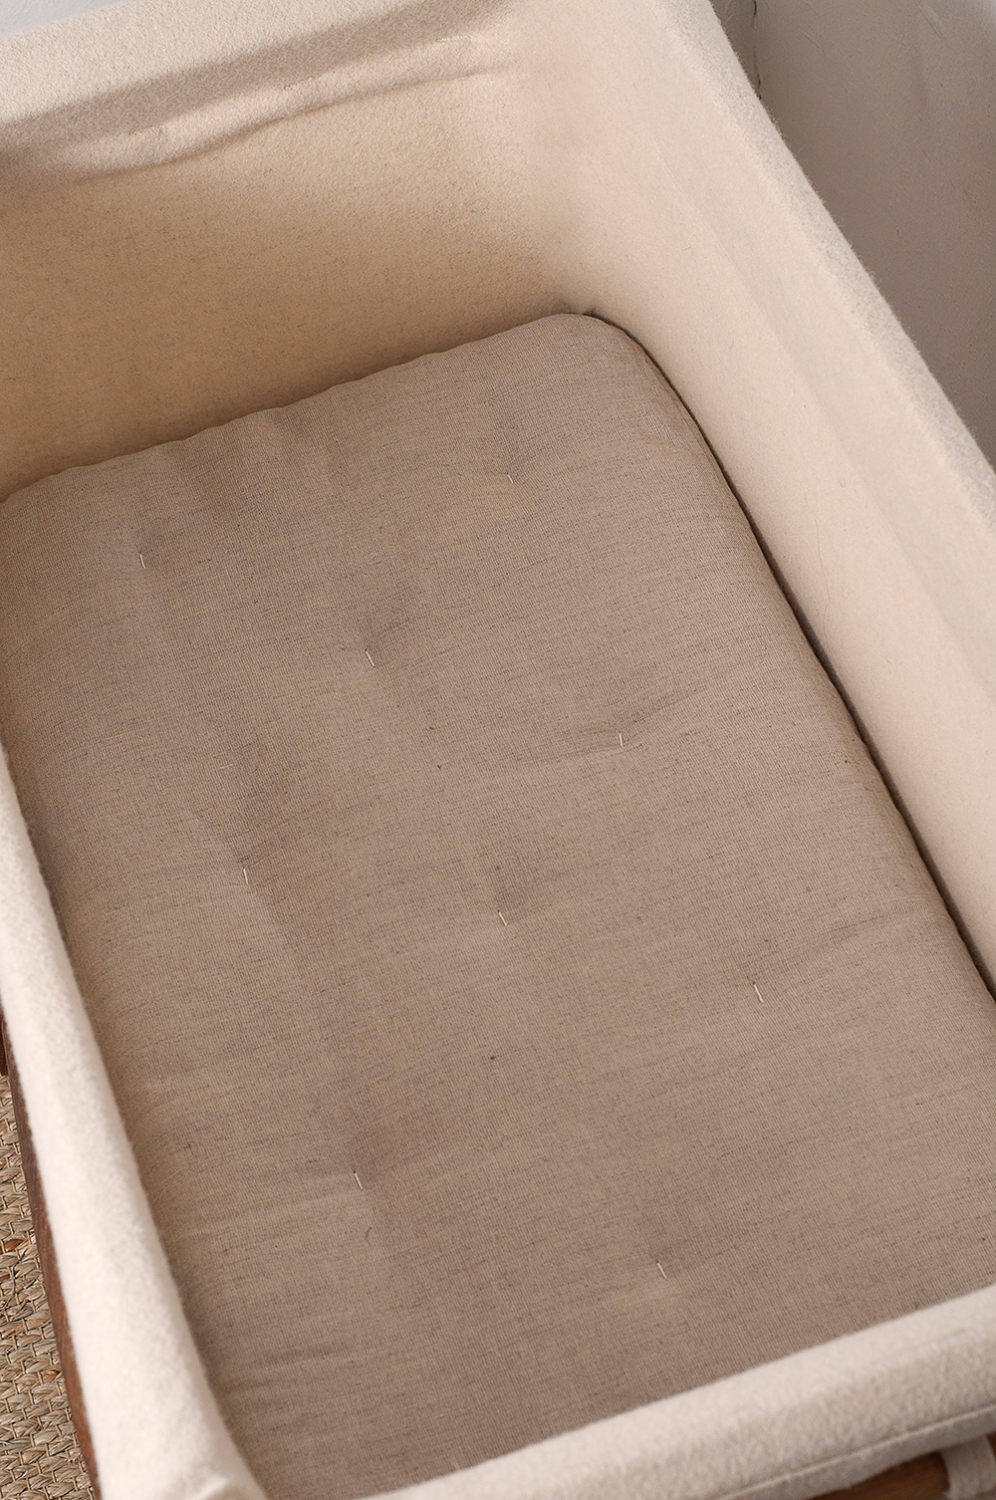 Home of Wool Mini Junior or Bed Size Crib Wool-Filled Mattress Bed 100/% Cotton